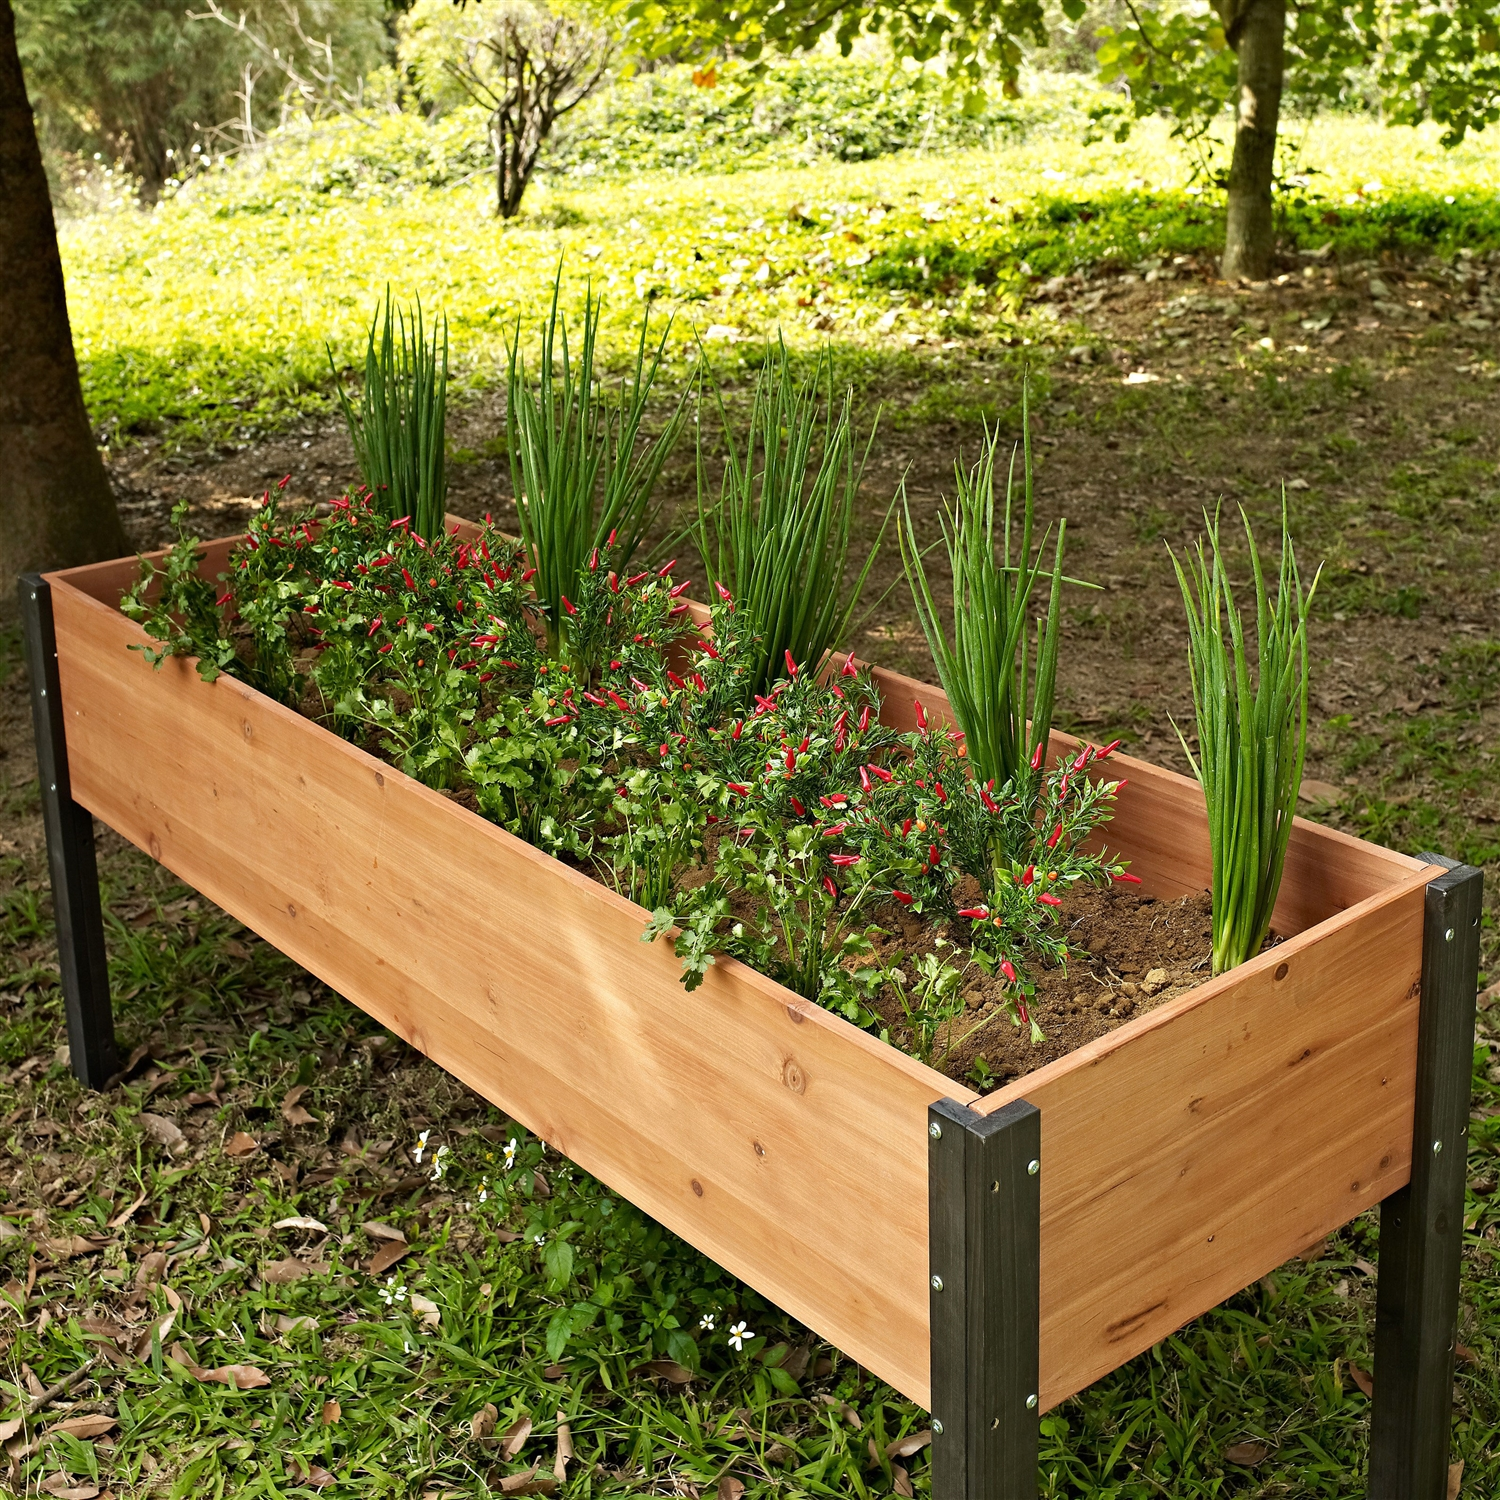 Gardening Beds: Elevated Outdoor Raised Garden Bed Planter Box